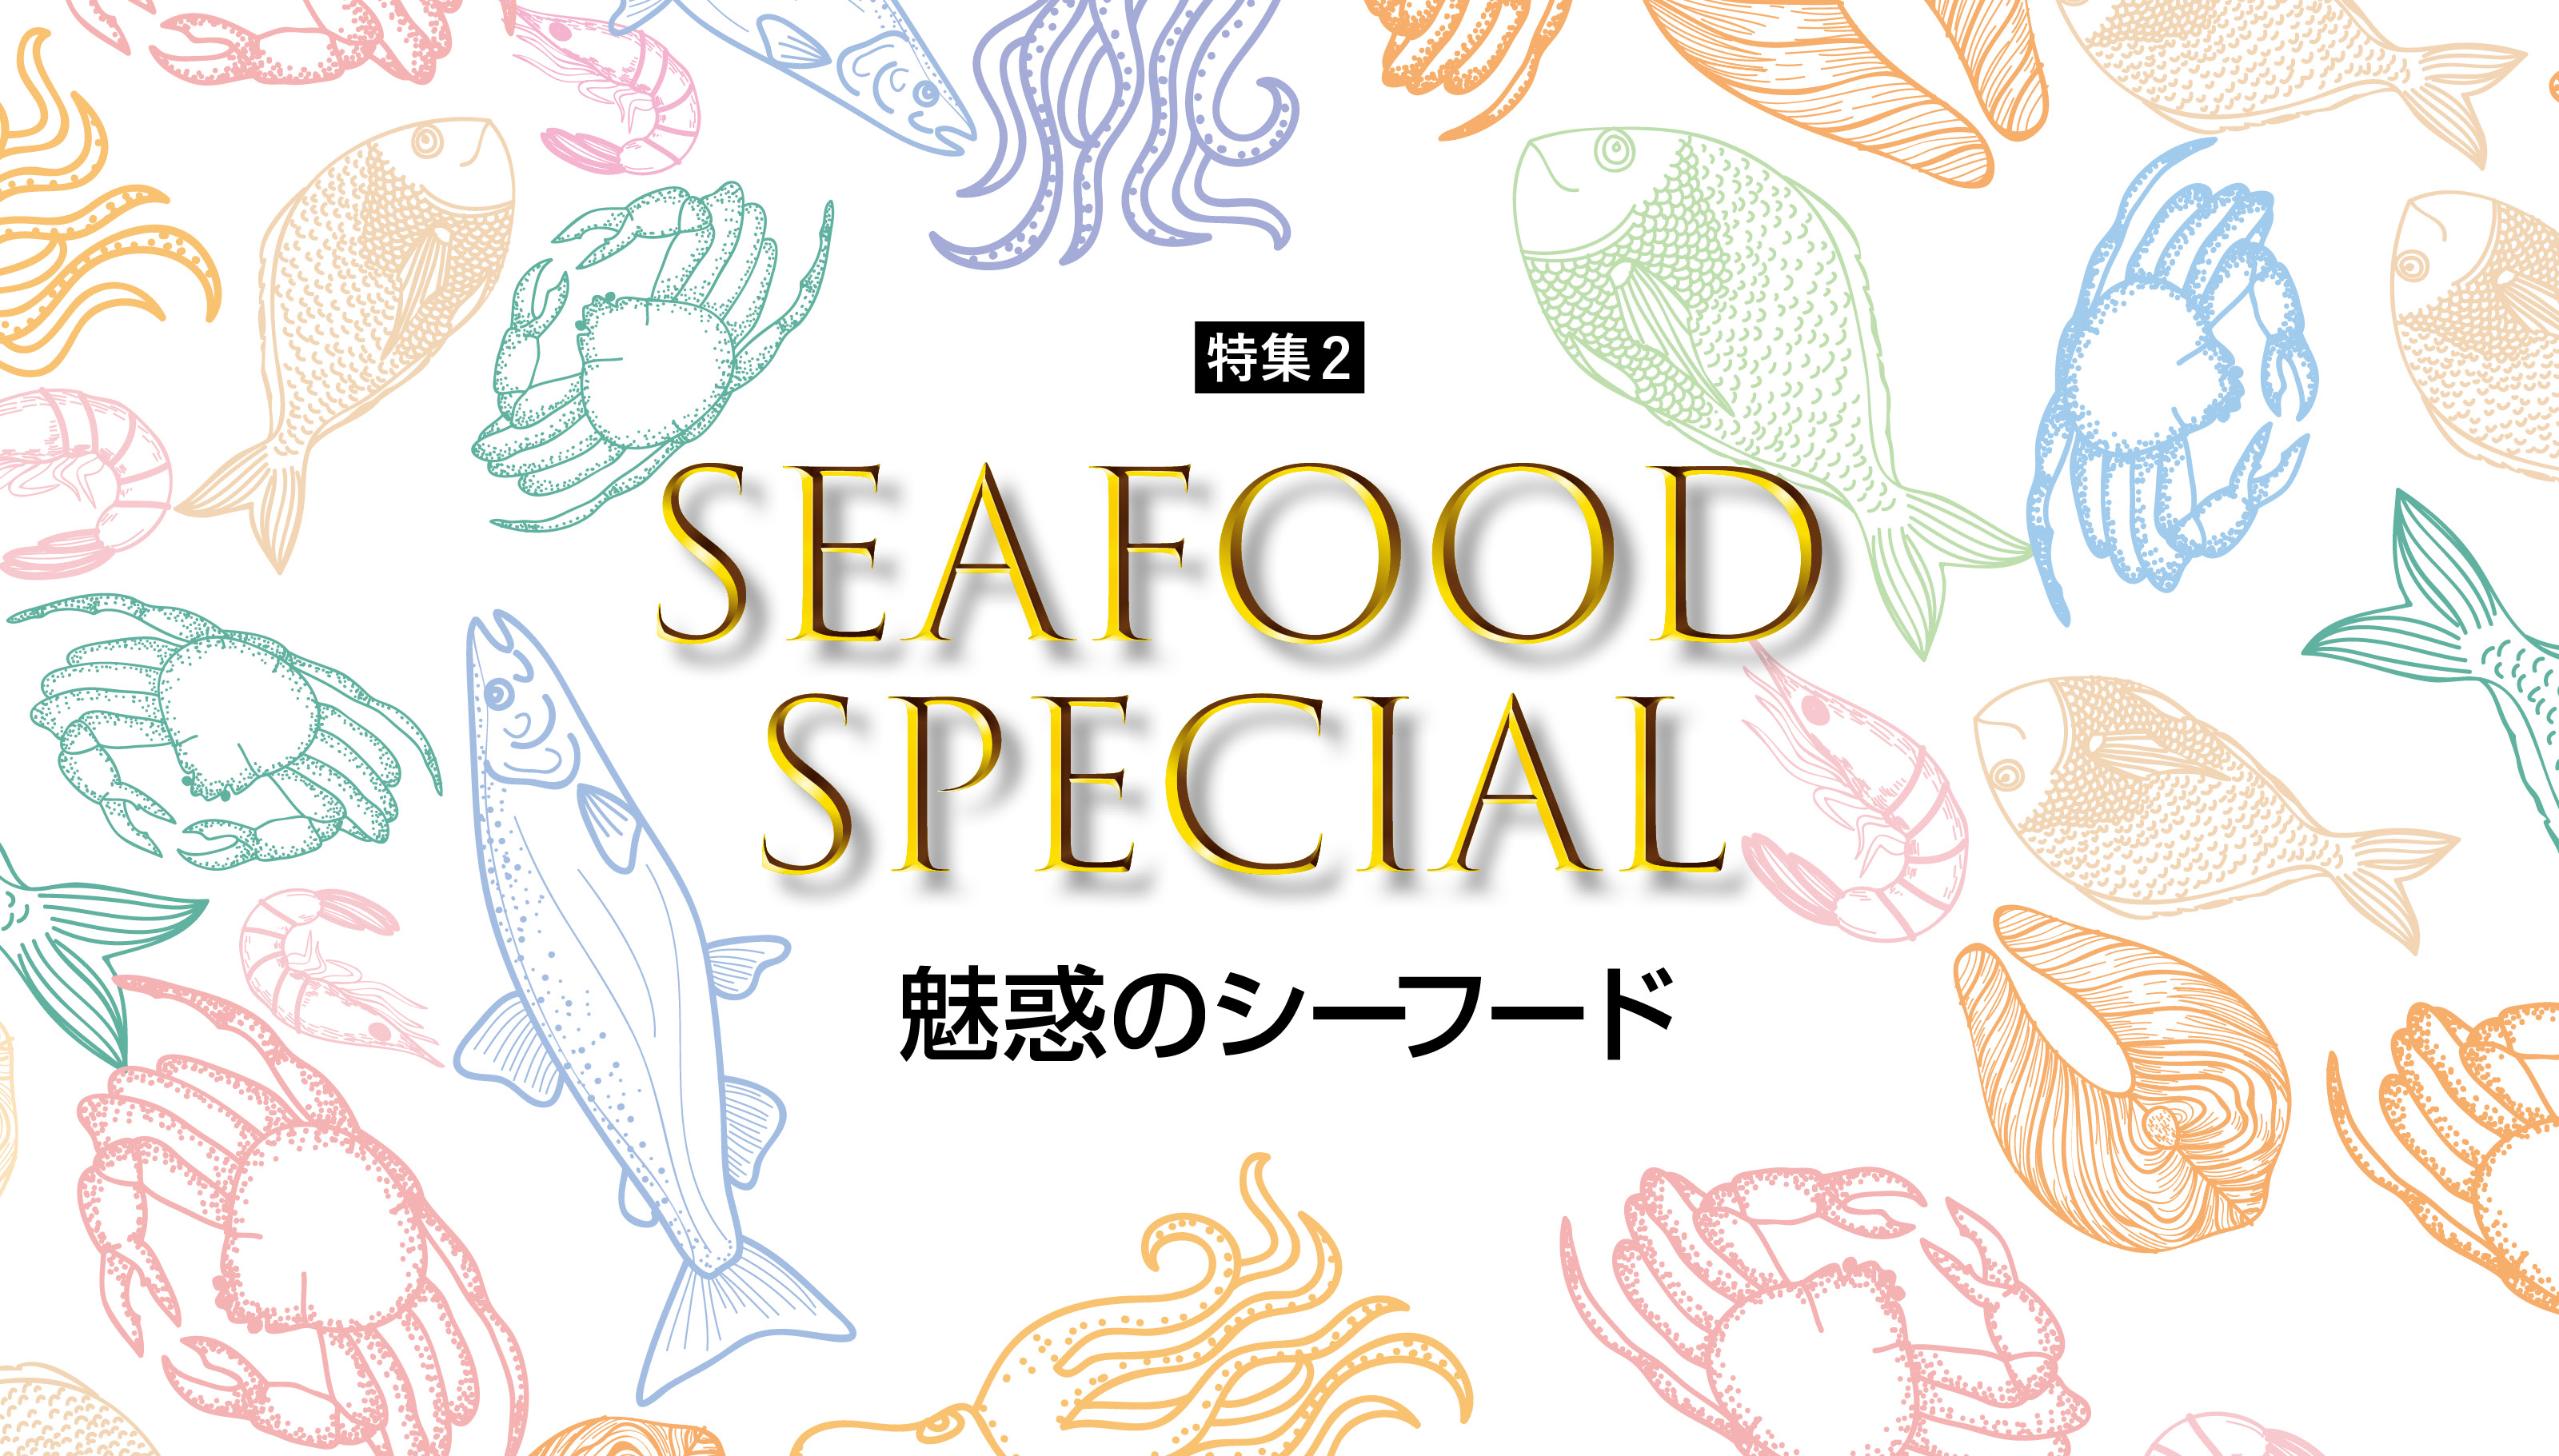 SEAFOOD SPECIAL